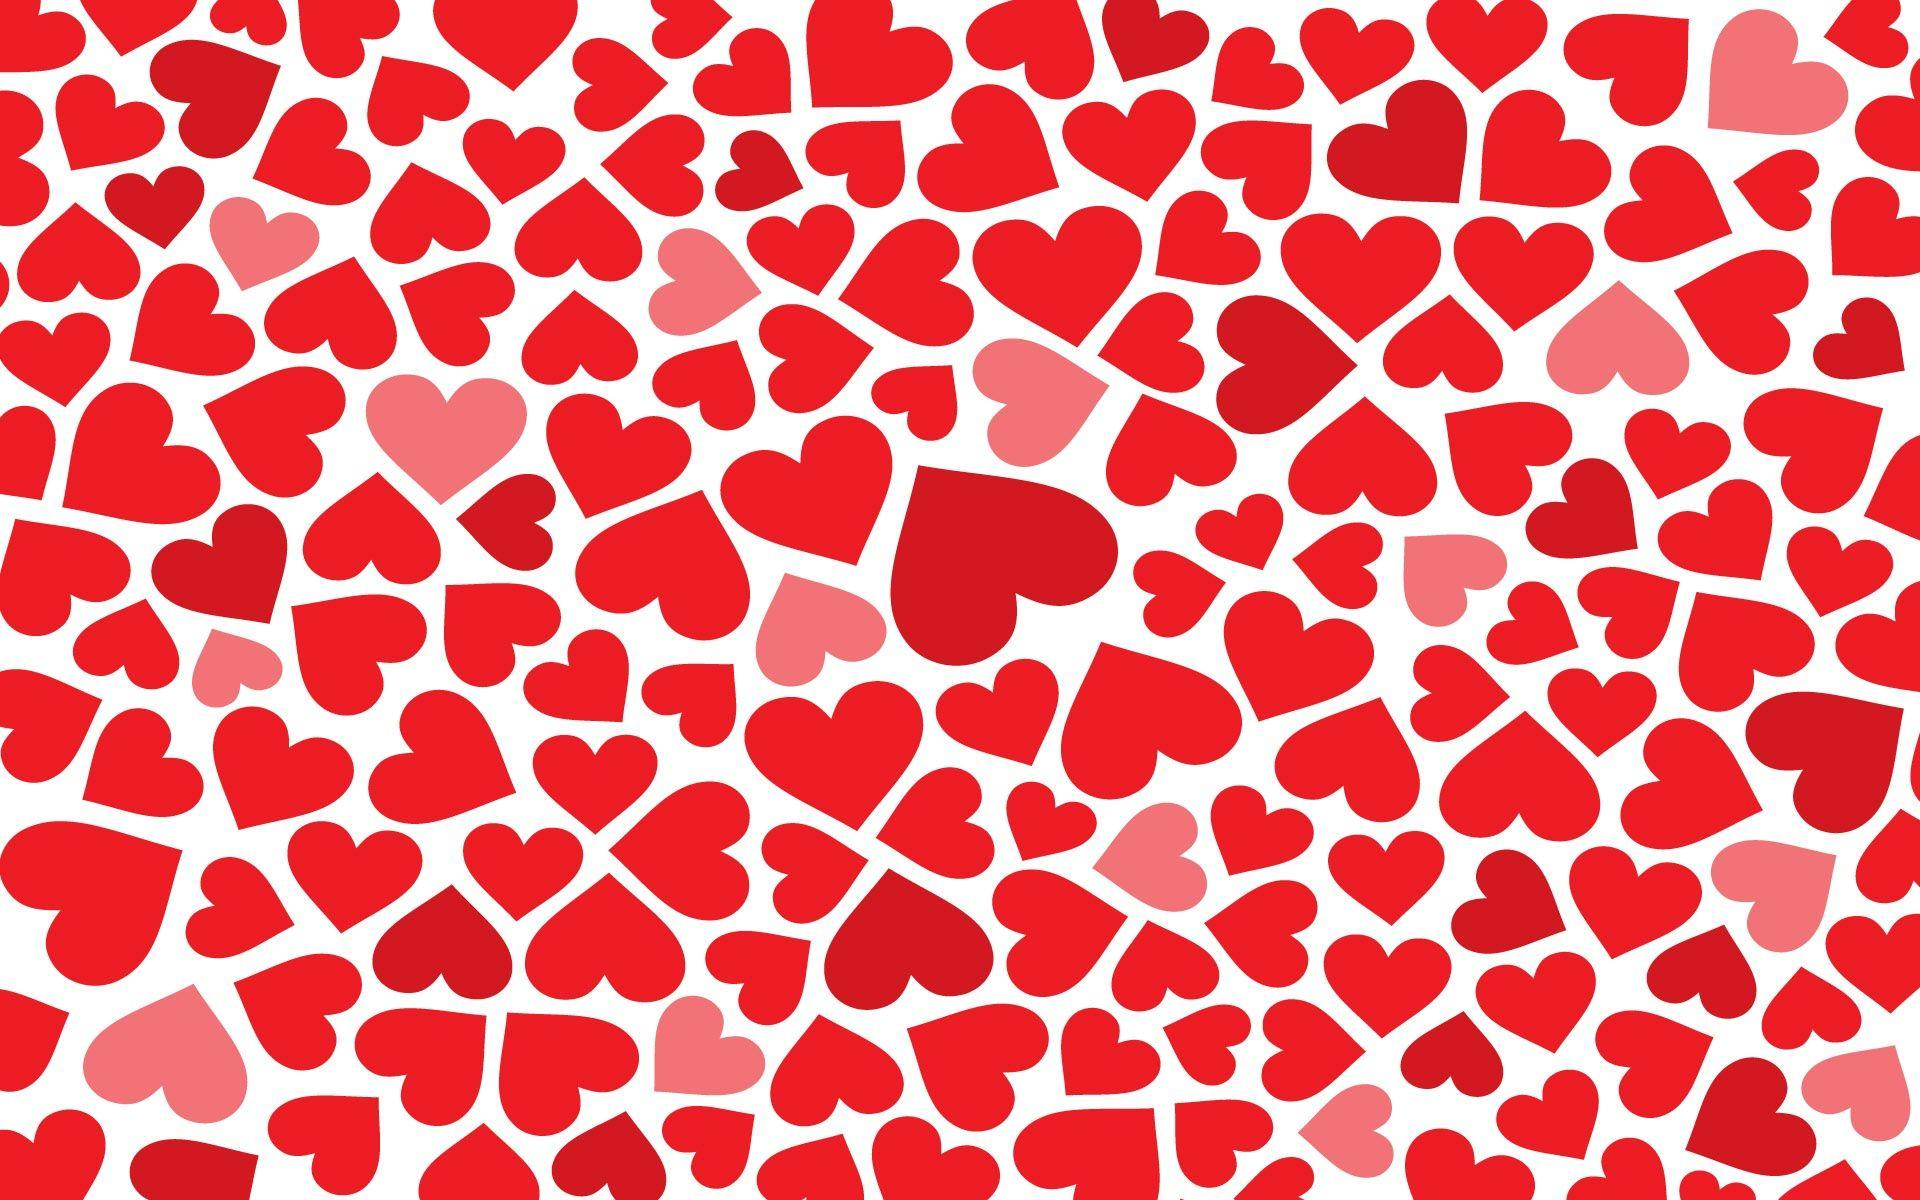 Hearts Backgrounds Wallpapers